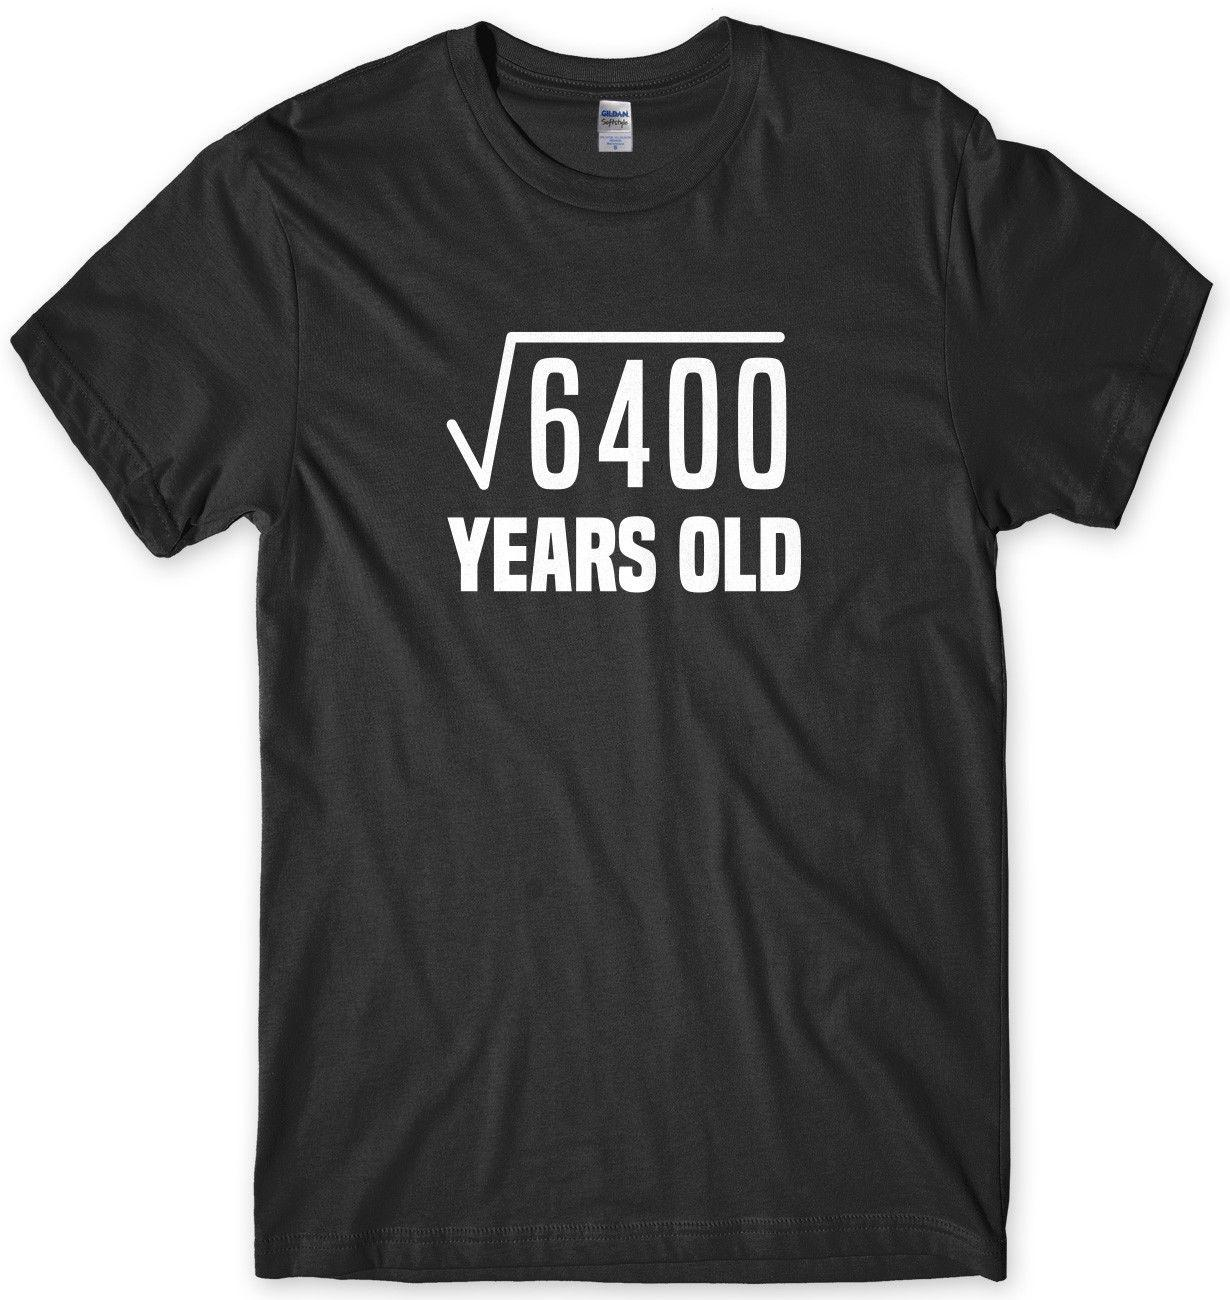 80th Birthday Tee Square Root Maths Funny Mens Unisex T Shirt Casual Gift Band Shirts Designs From Noveltgifts 1028